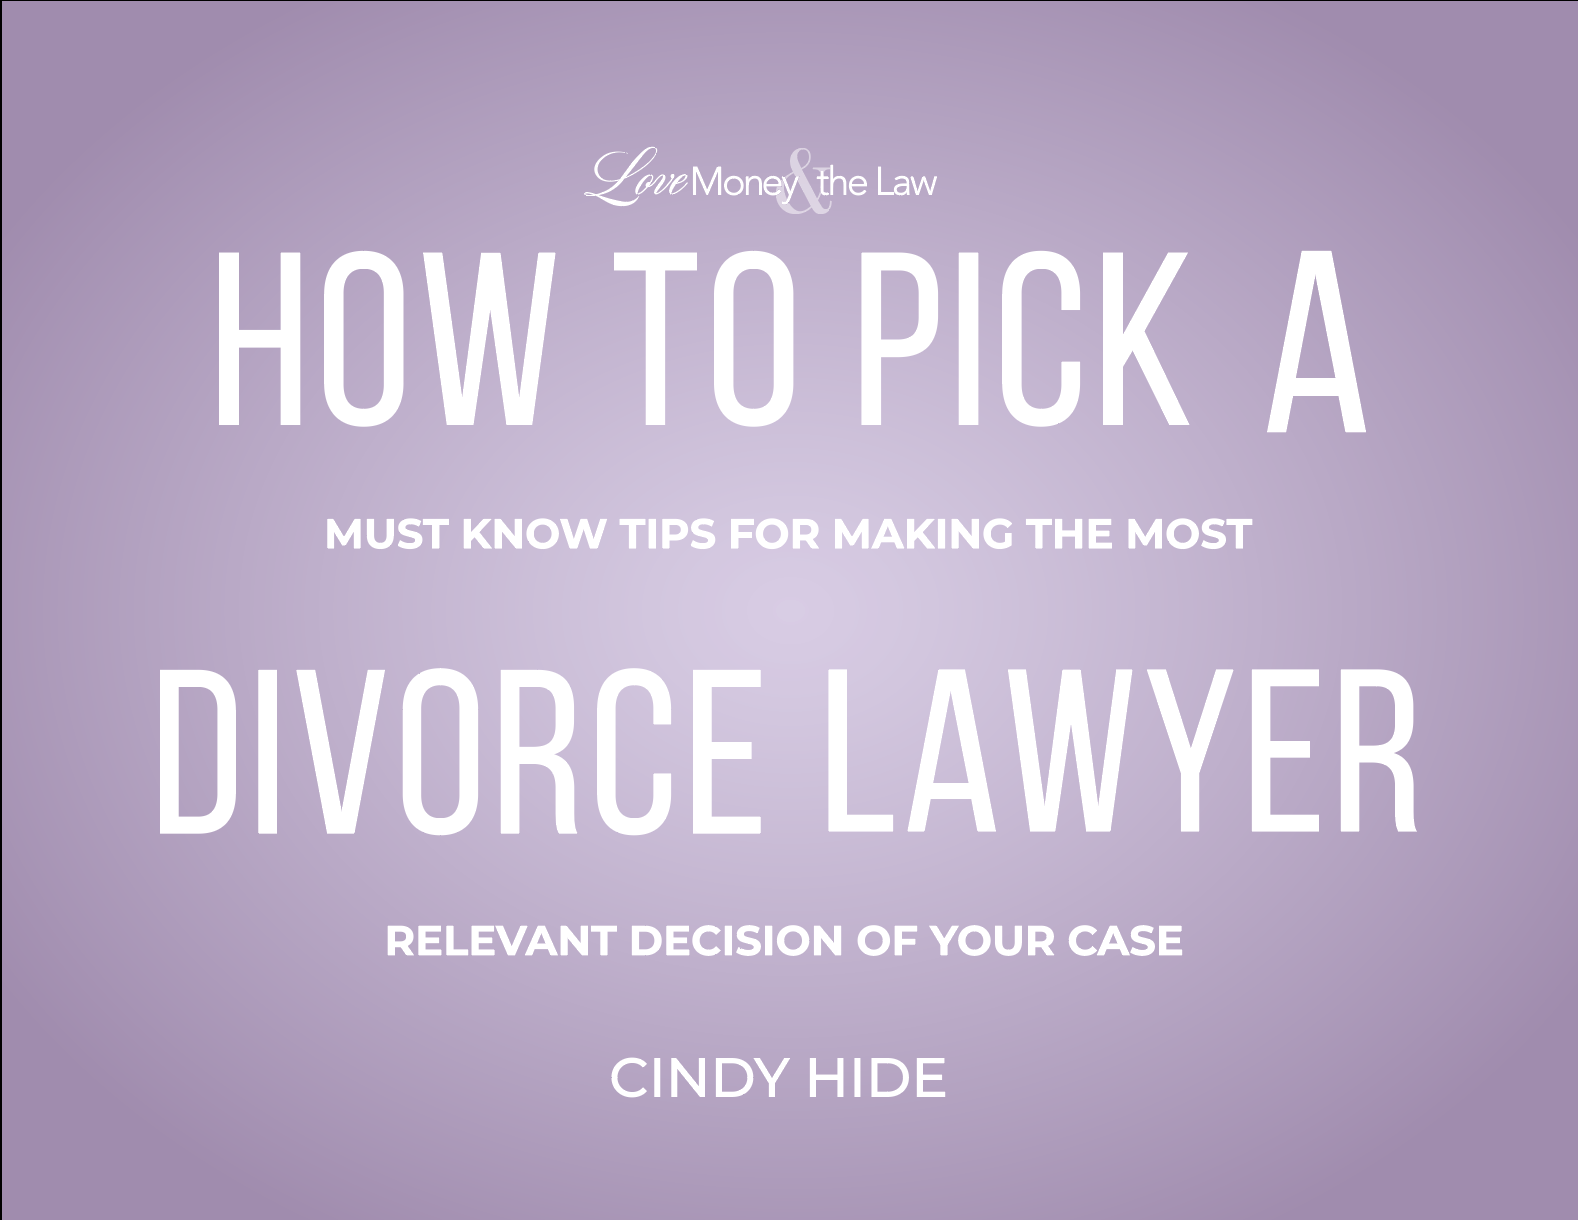 Resources for How to Pick A Divorce Lawyer: Must Know Tips for Making the Most Relevant Decisions of Your Case.